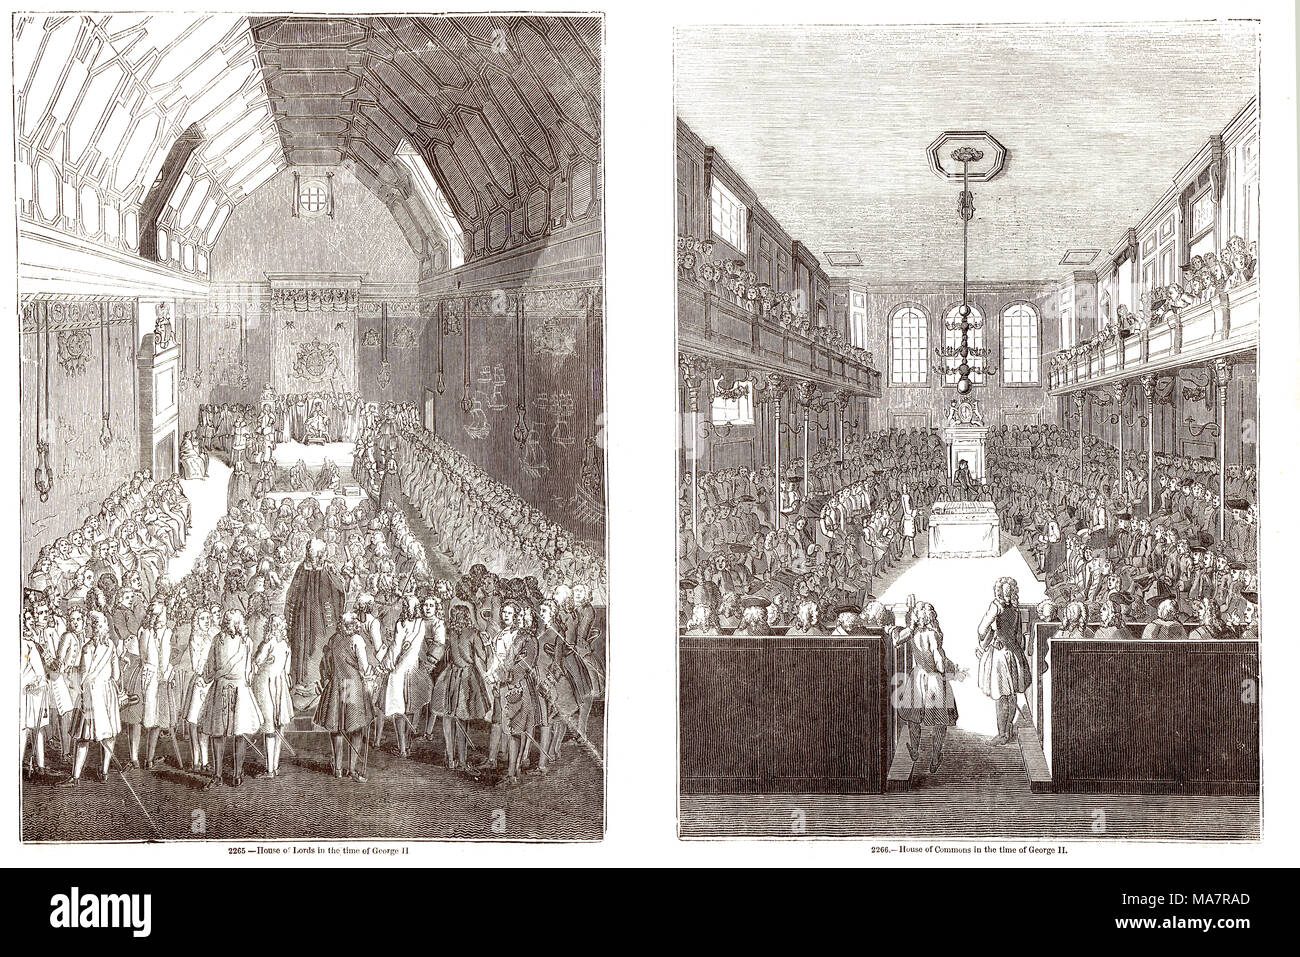 Interiors of the Old House of lords and commons at the time of George II - Stock Image